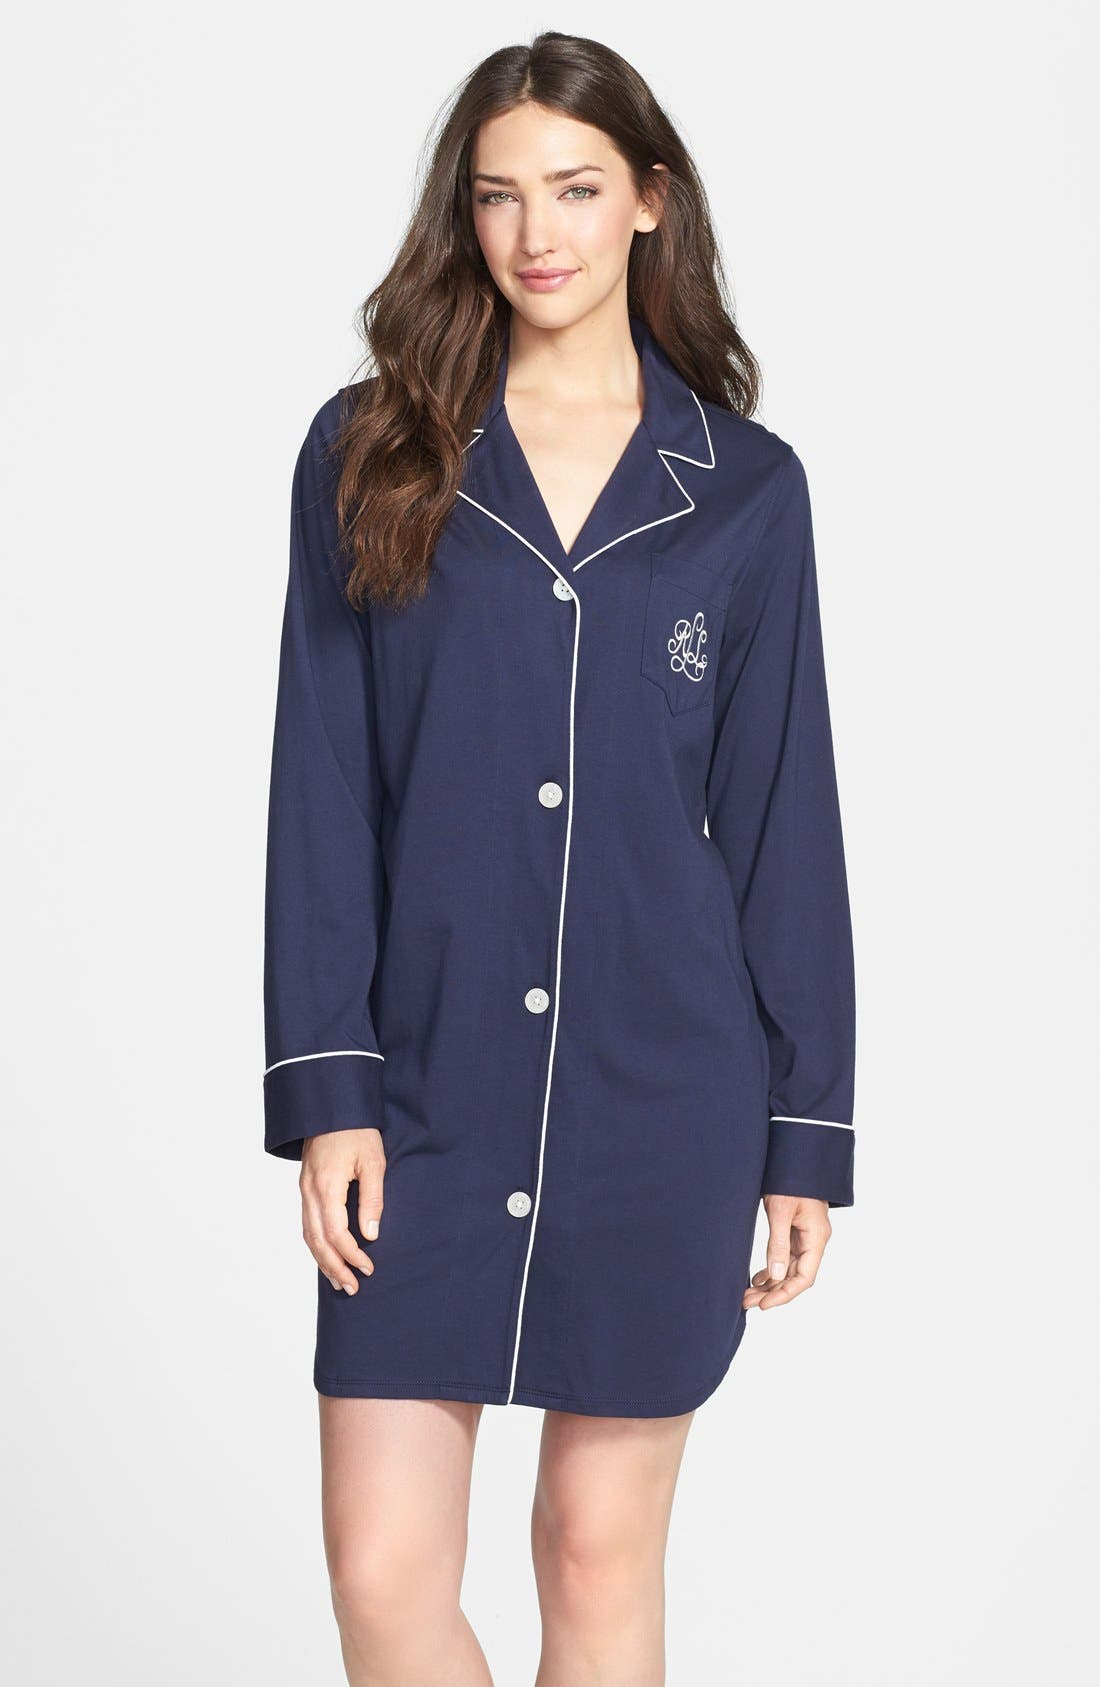 Alternate Image 1 Selected - Lauren Ralph Lauren Knit Nightshirt (Online Only)